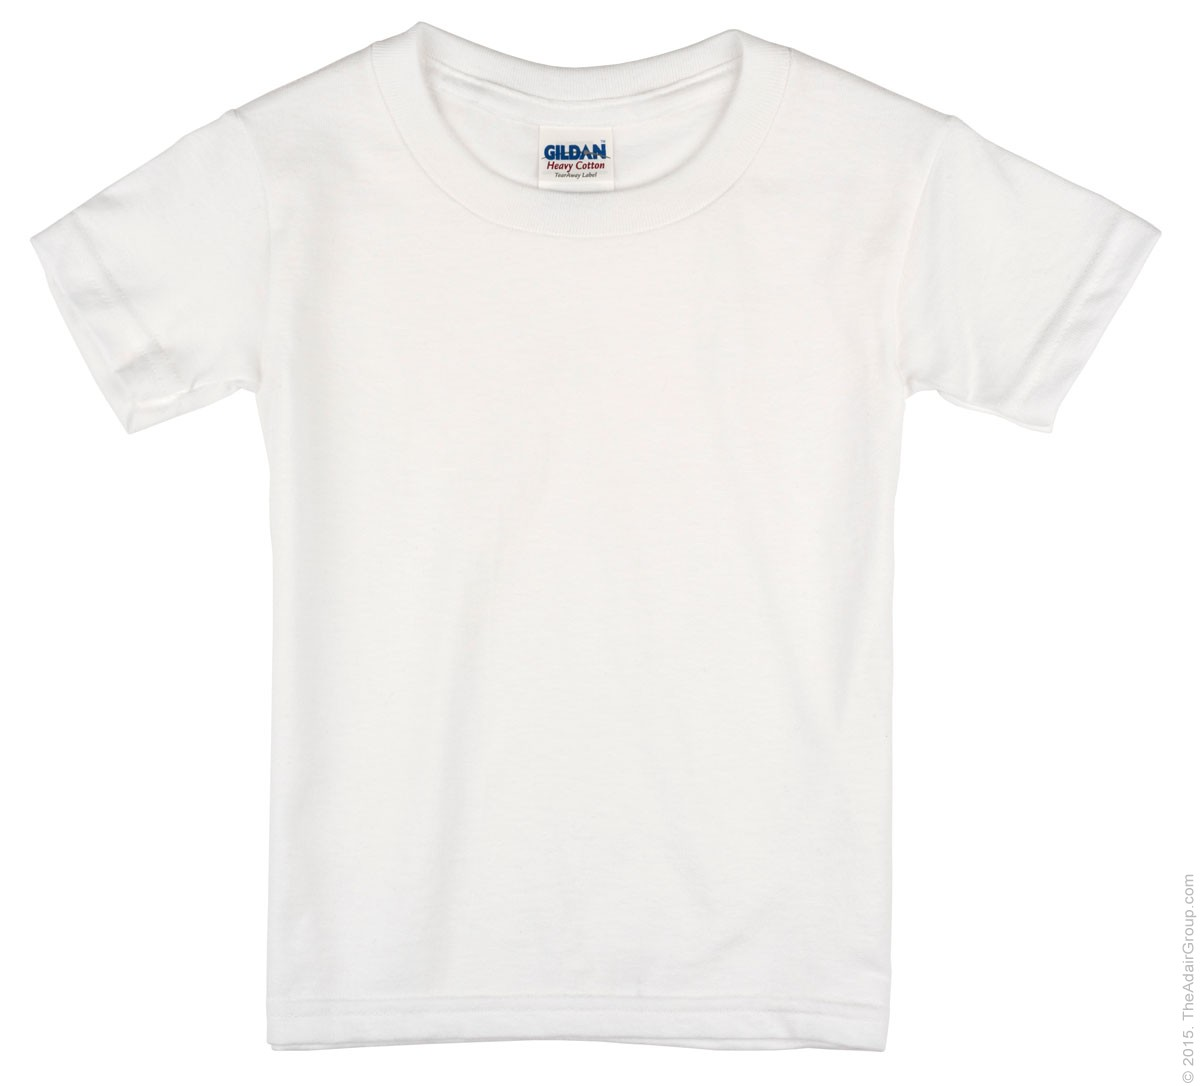 Plain White Shirt Artee Shirt